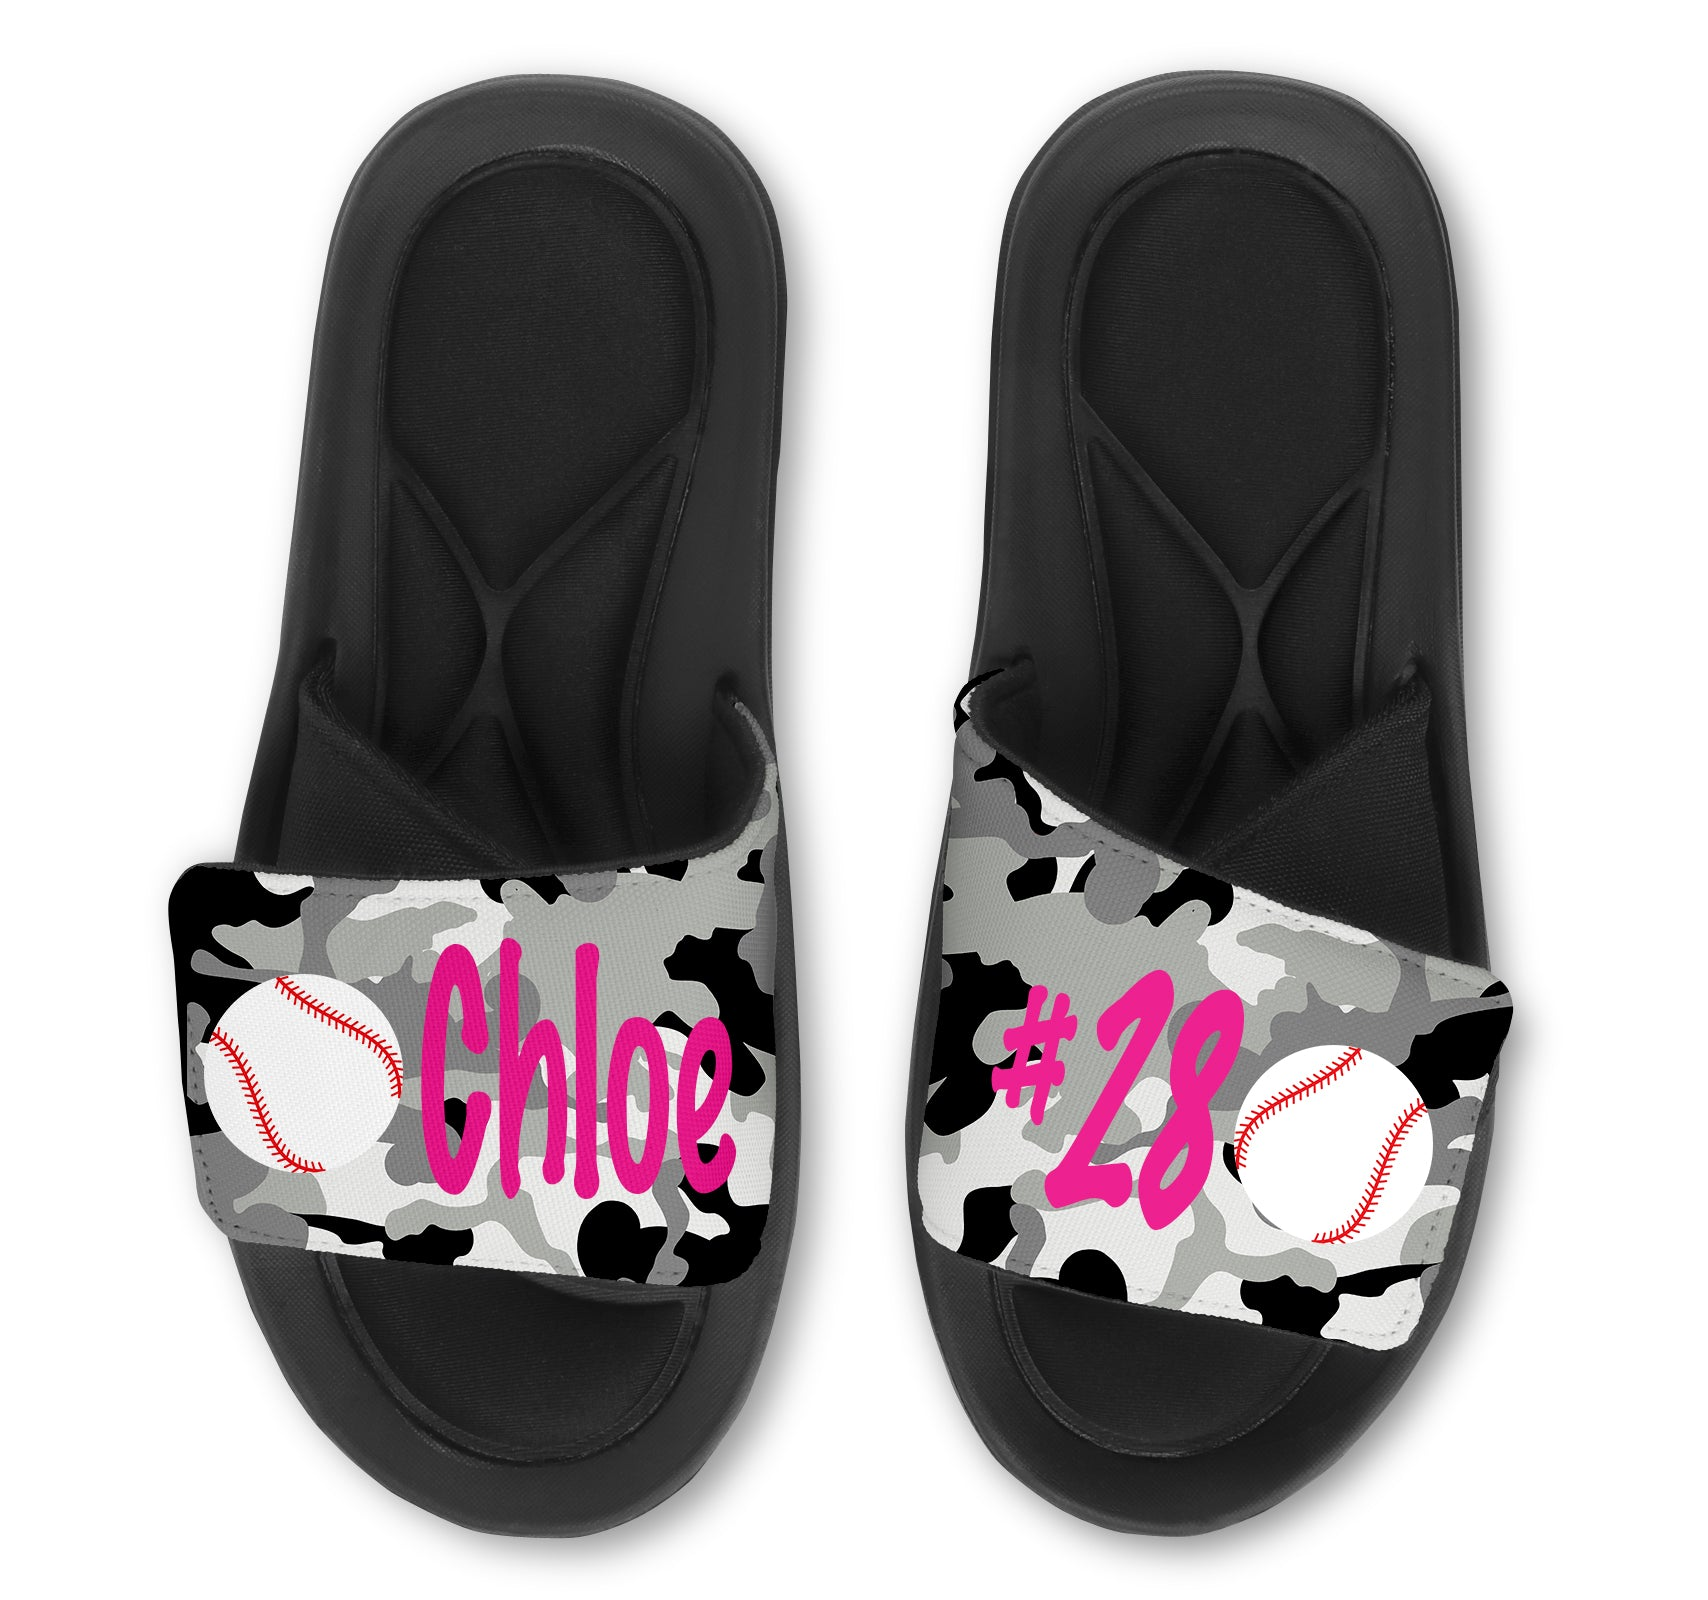 Baseball Custom Slides / Sandals - Camo